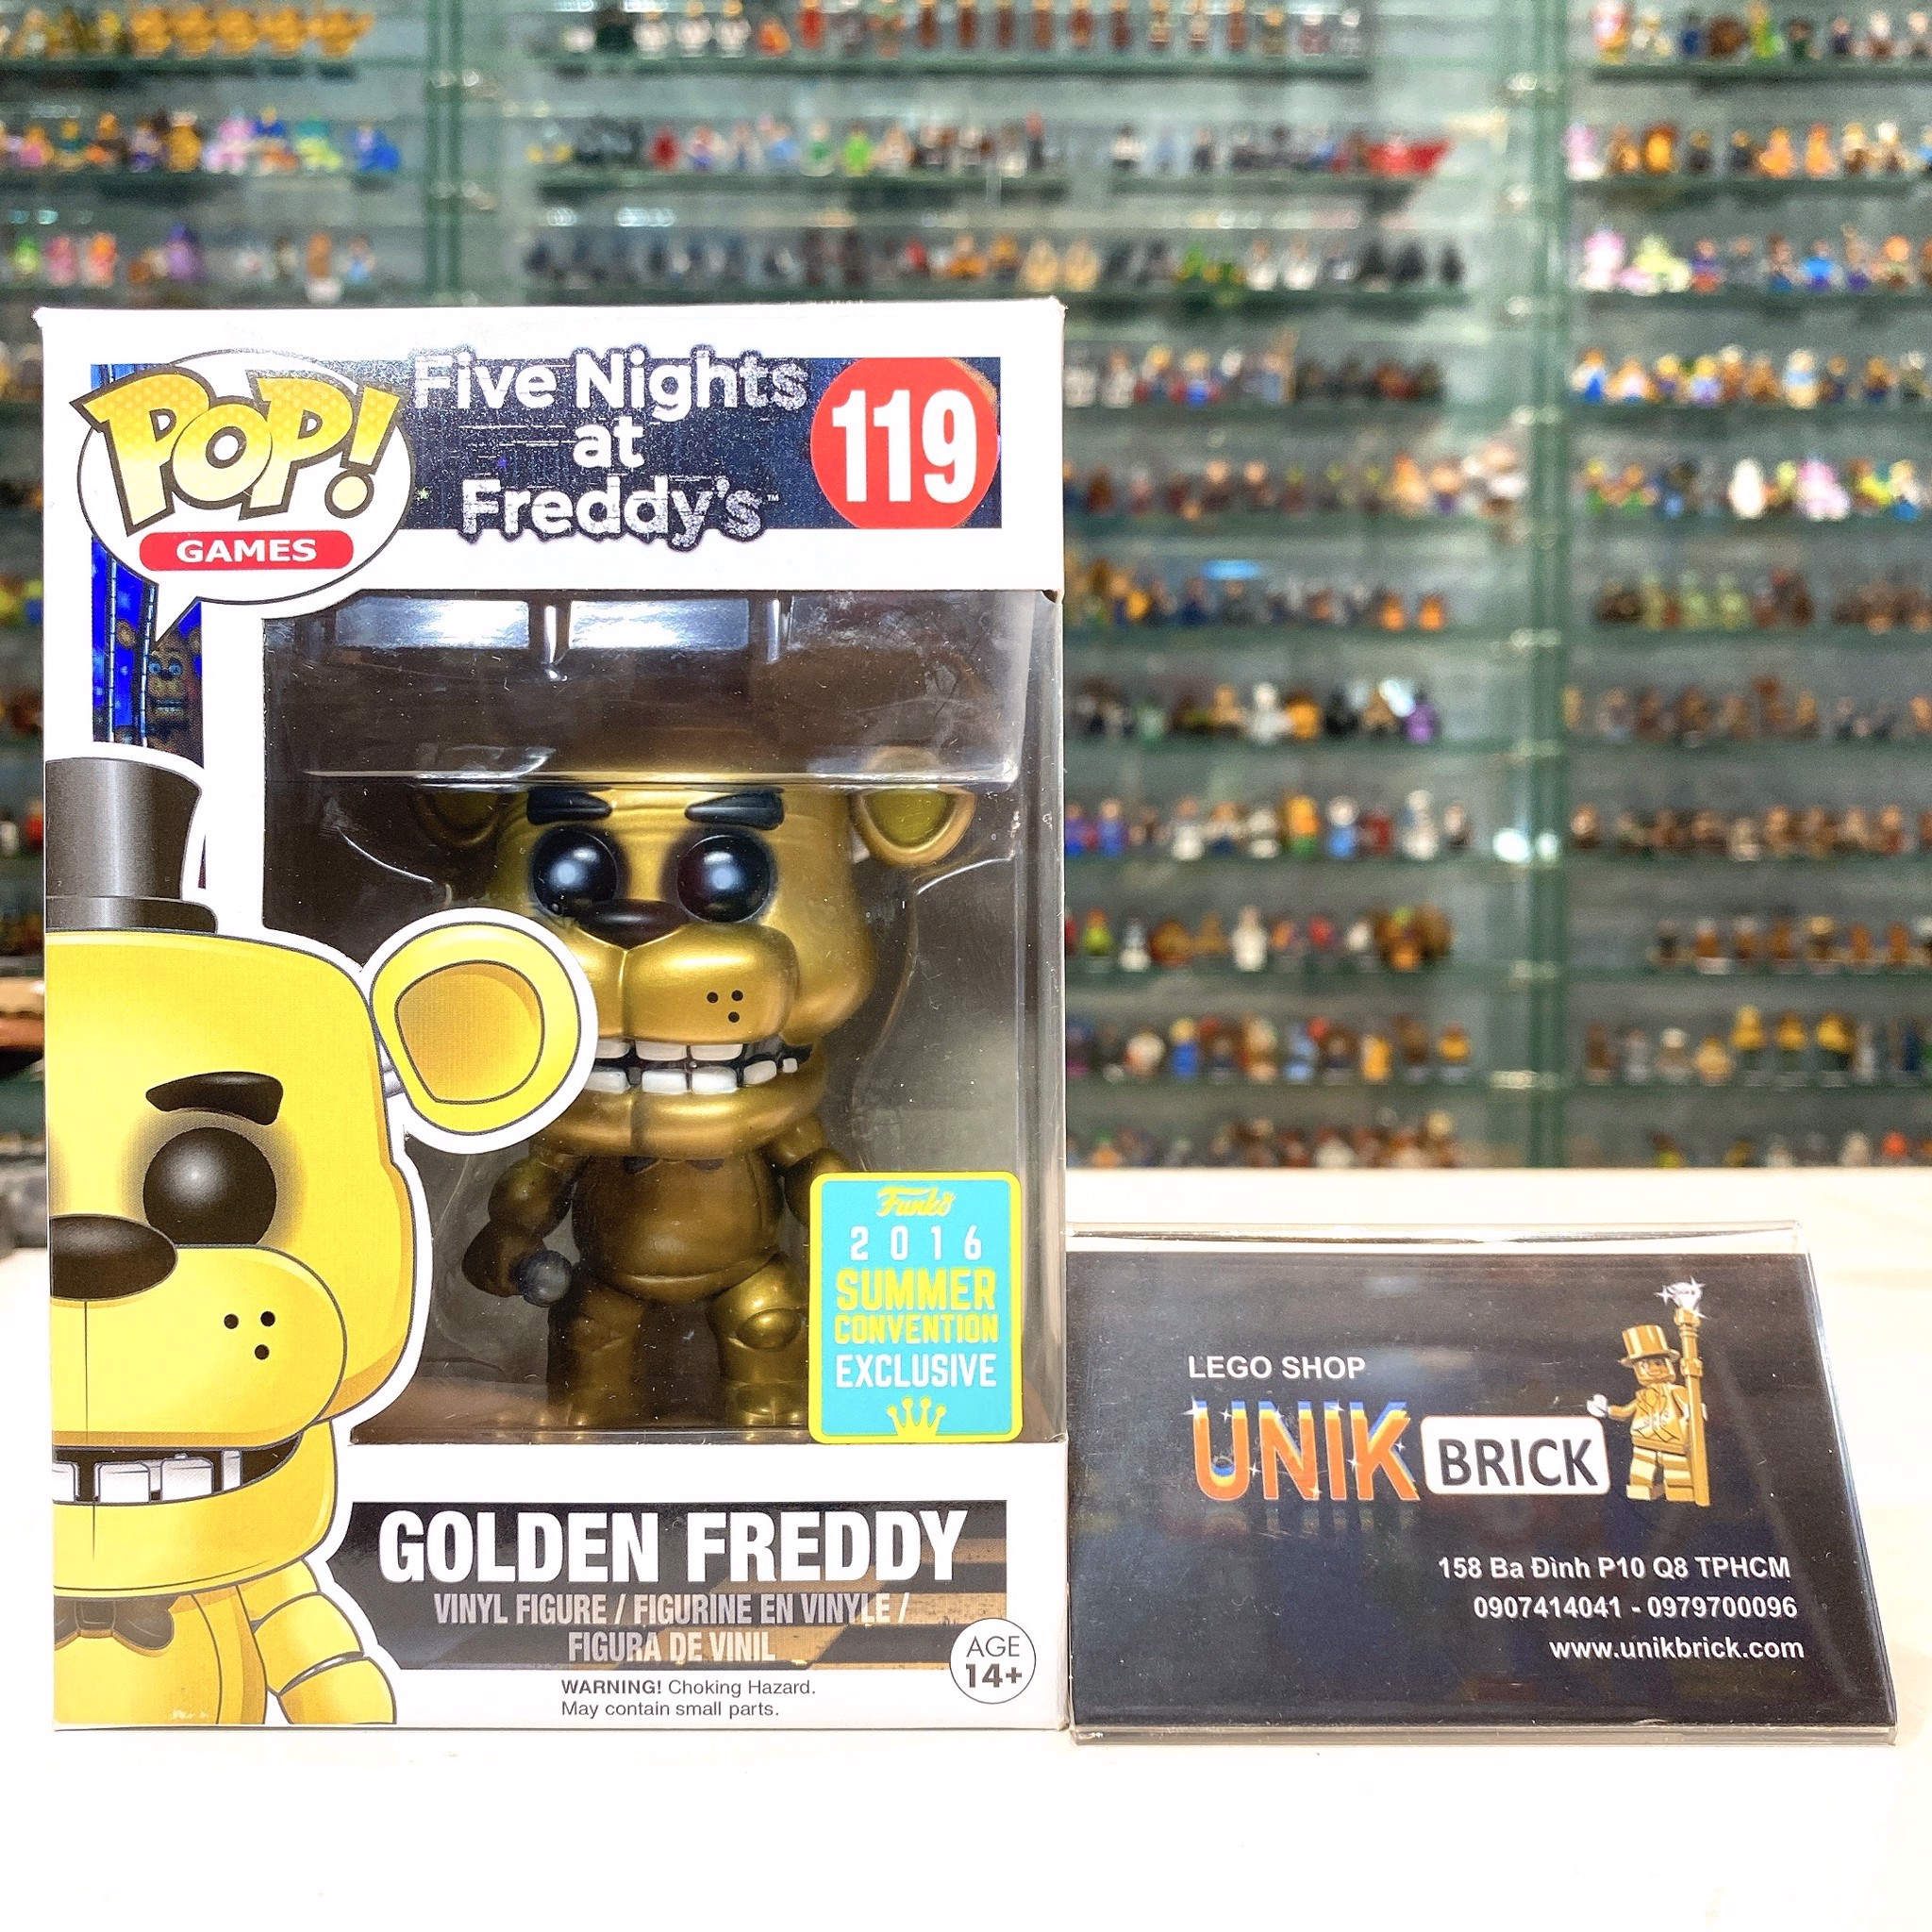 FUNKO POP Five Nights at Freddy's 119 Golden Freddy